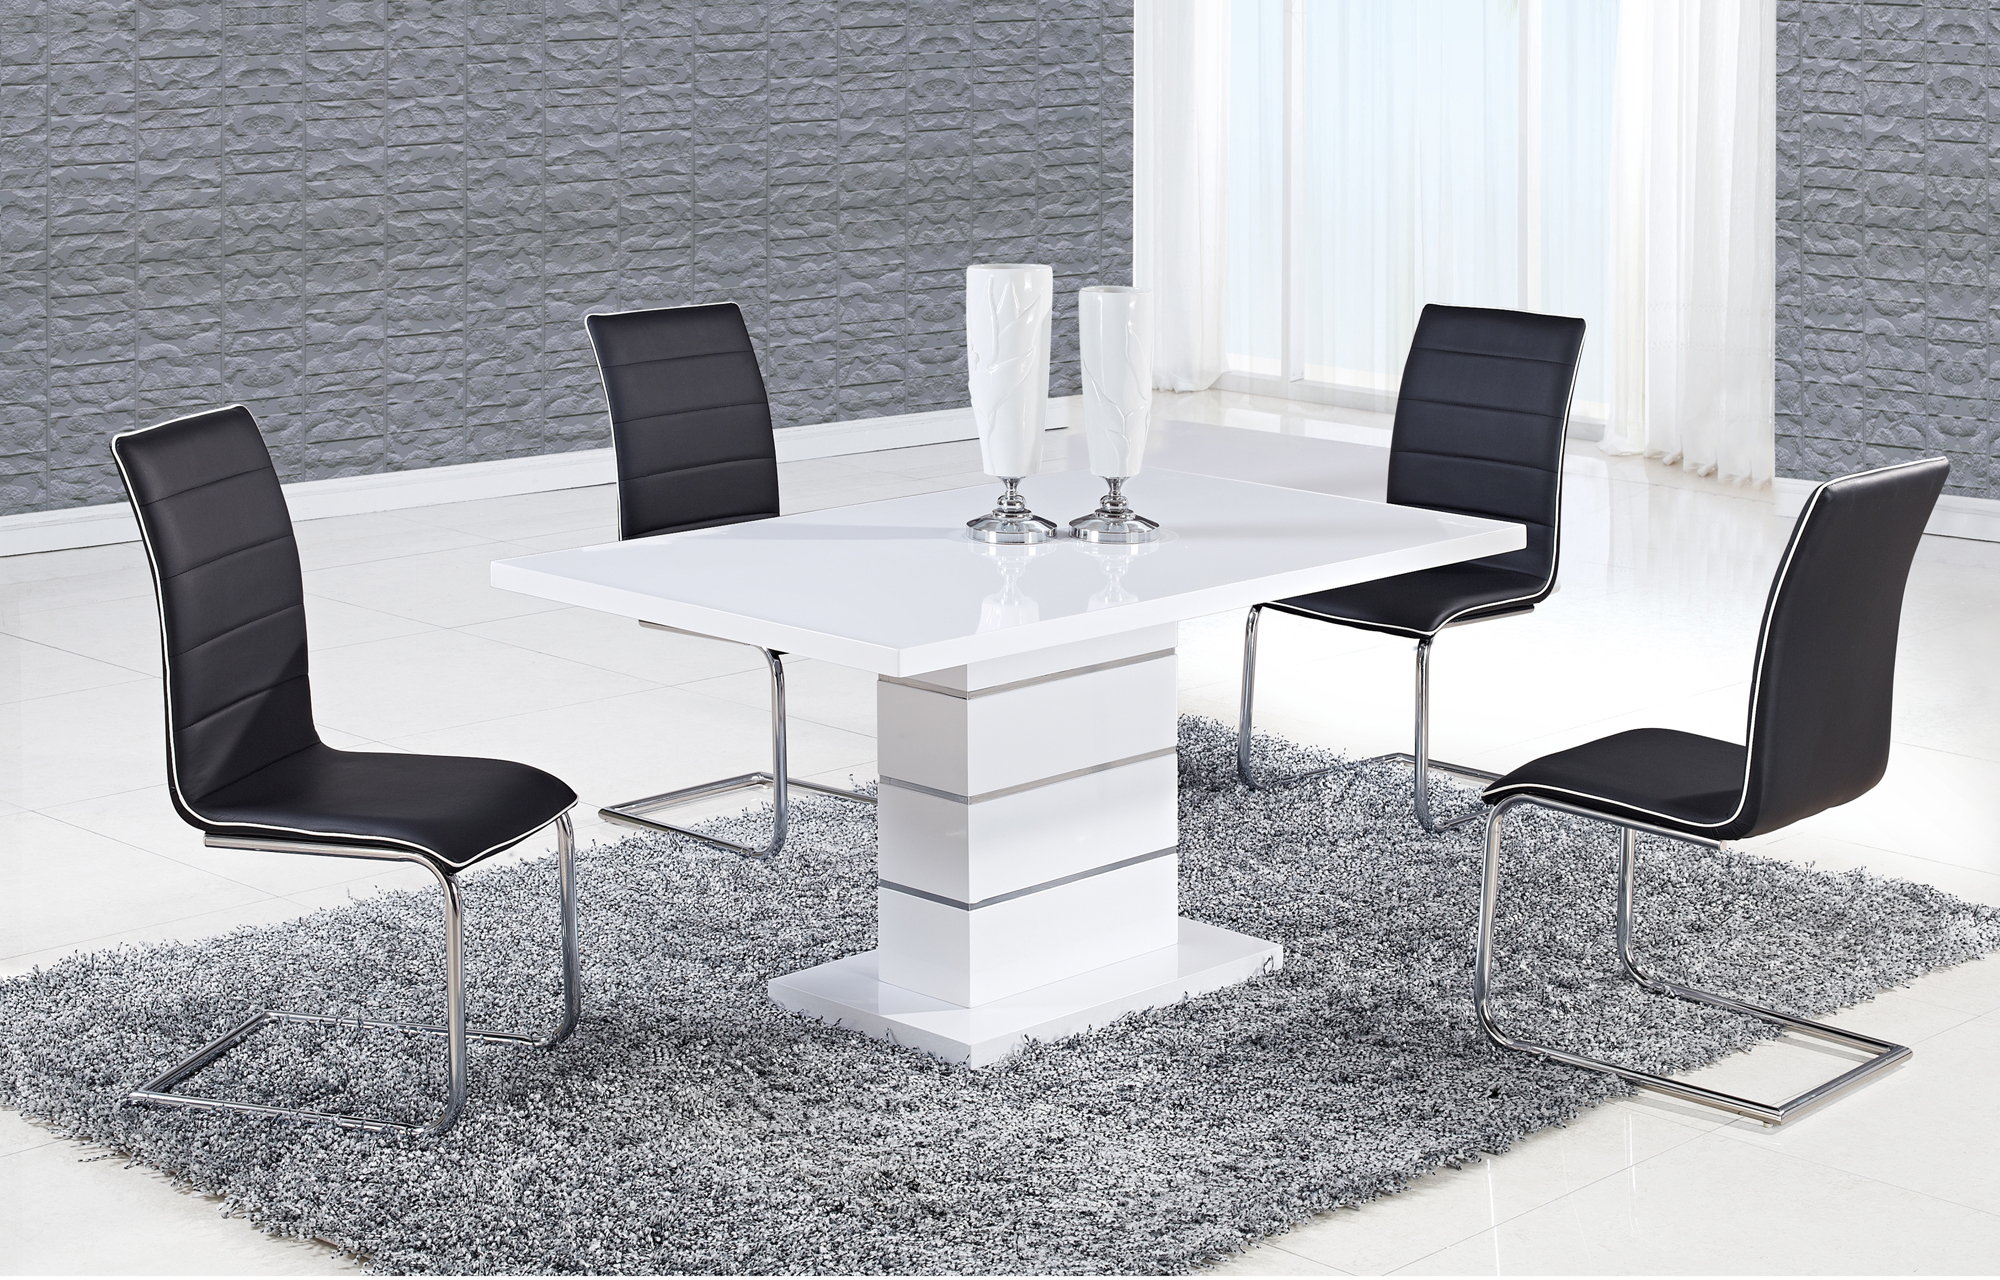 Dining Table D470DT White HG by Global Furniture : D470DTD490DC BL from futonland.com size 2000 x 1280 jpeg 1923kB